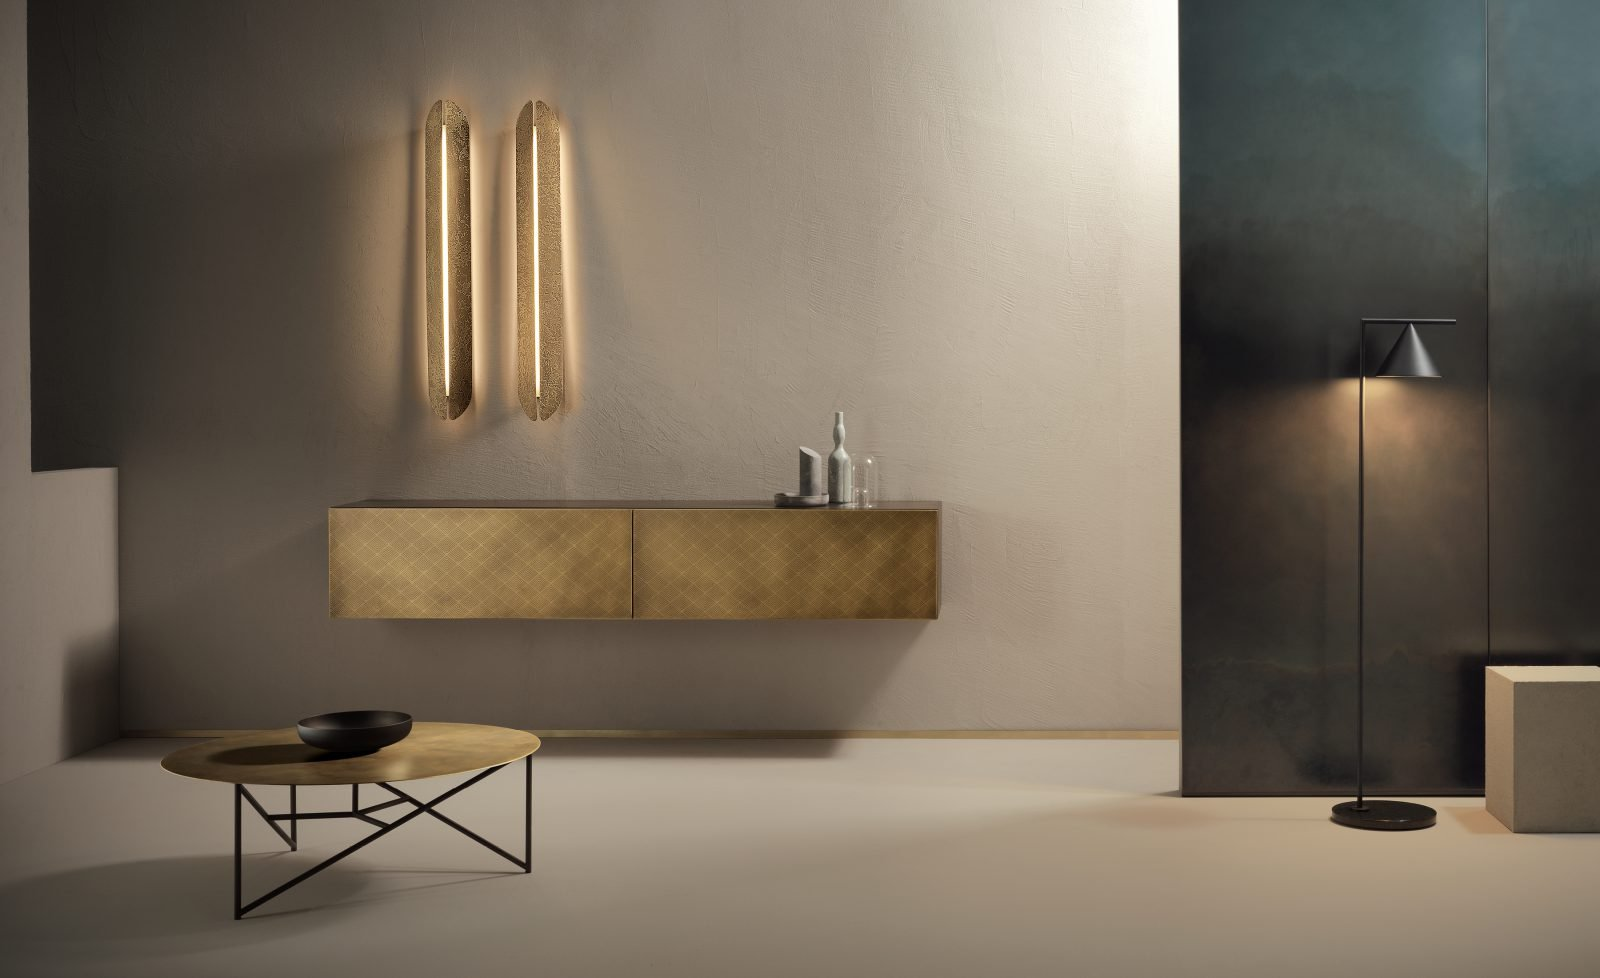 Aare Wall Lamp lighting from De Castelli, designed by Alexander Purcell Rodrigues